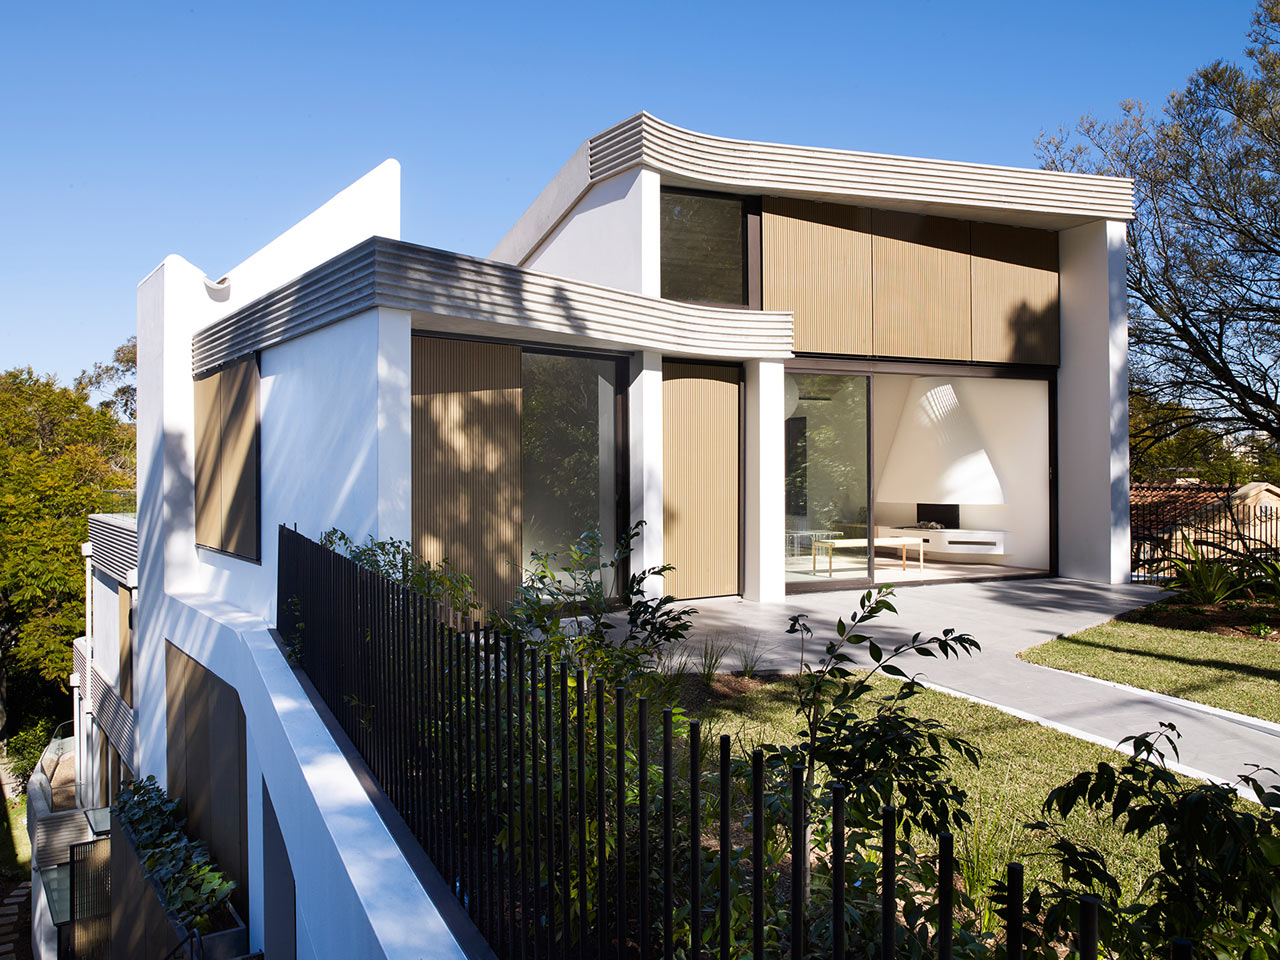 The Triplex Apartments By Luigi Rosselli Architects